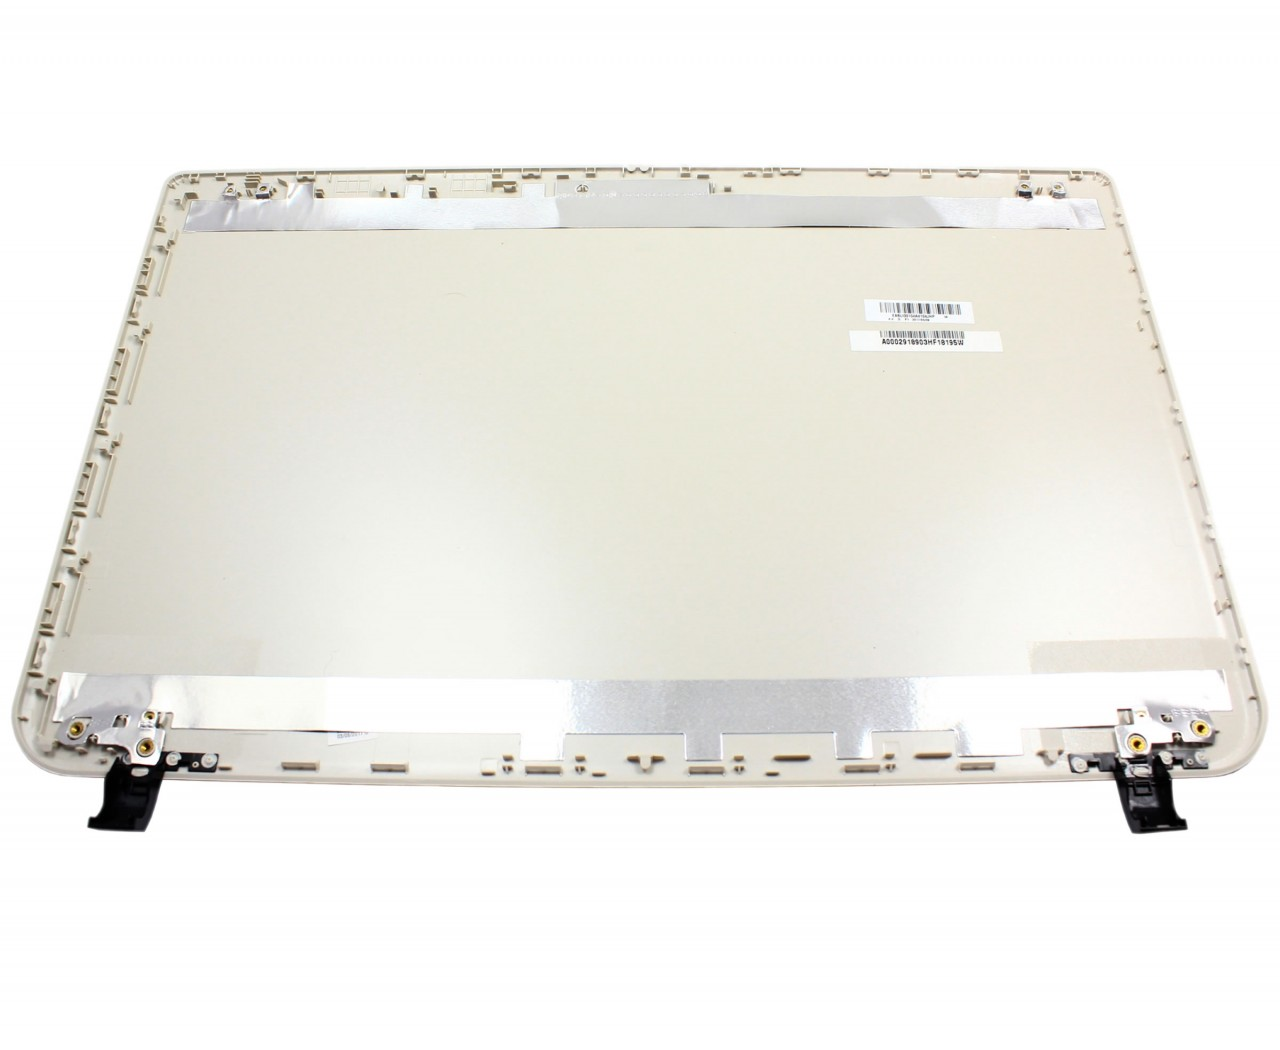 Capac Display BackCover Toshiba Satellite L50 B Carcasa Display Argintie imagine powerlaptop.ro 2021